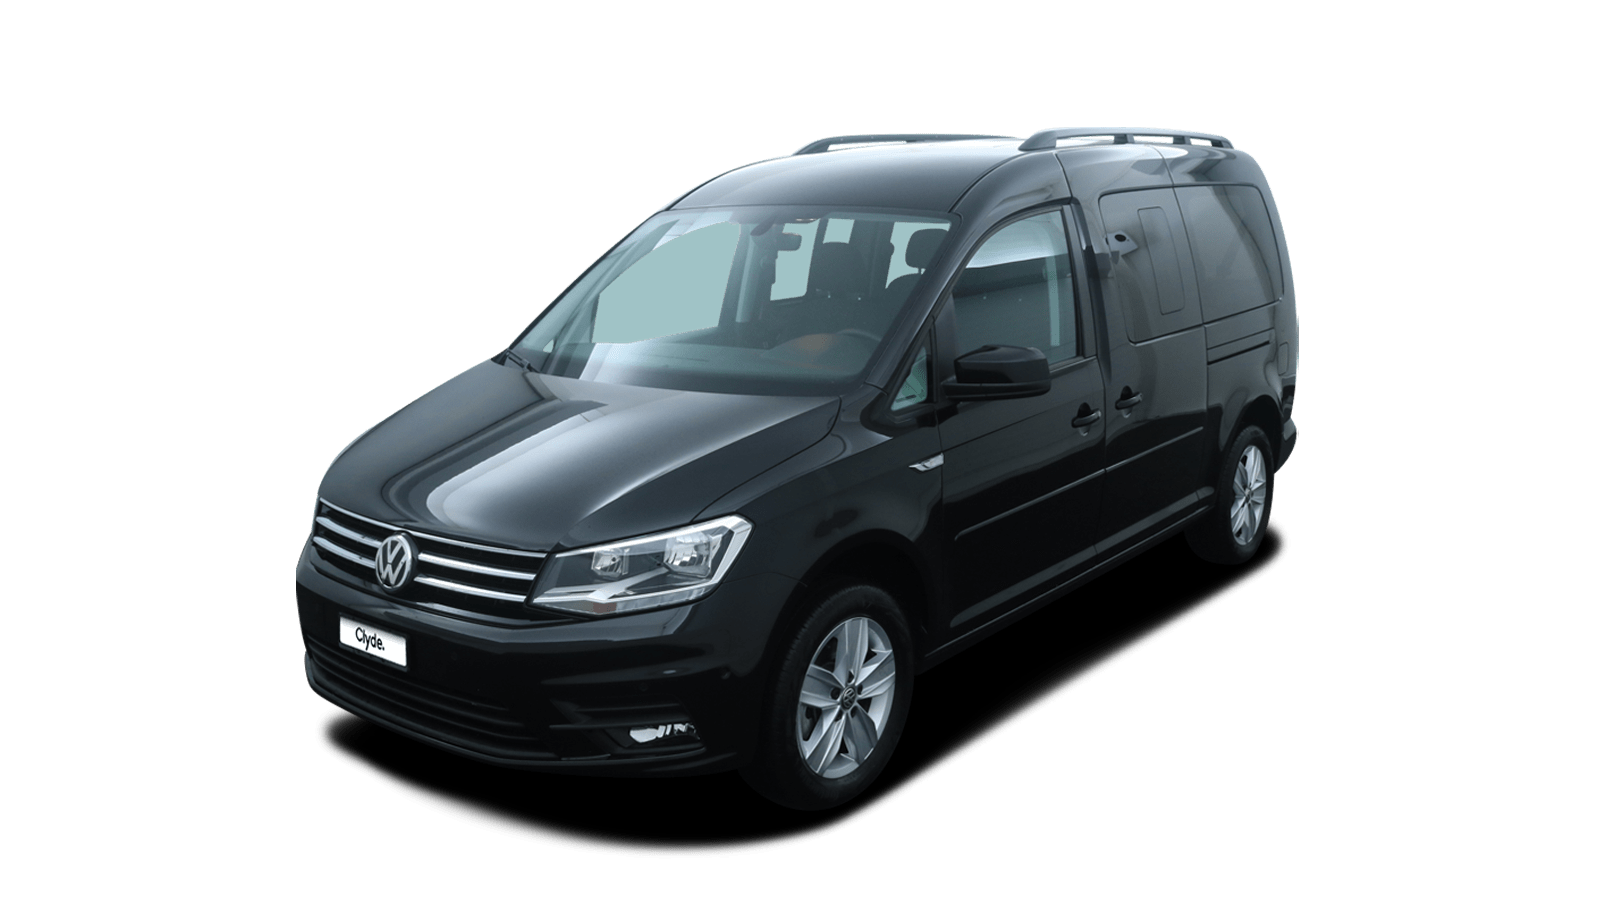 VW Caddy Maxi Black front - Clyde car subscription